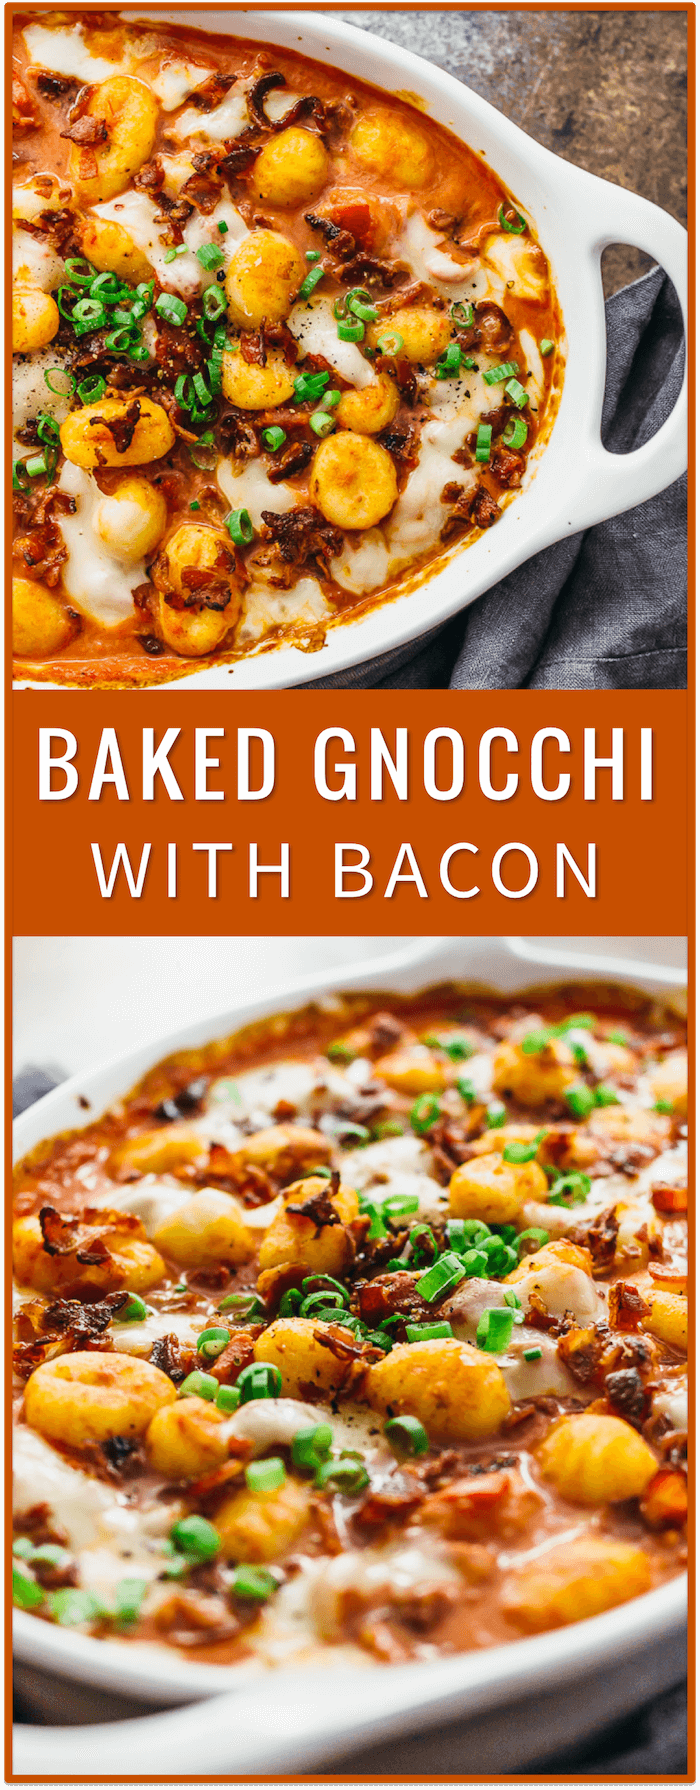 Baked gnocchi pasta recipe with bacon, sun-dried tomatoes, mozzarella cheese, oven baked gnocchi, baked gnocchi casserole, with chicken, with cheese, healthy, with kale, butter sauce, mac and cheese, bhg, oven, easy, pesto, ricotta